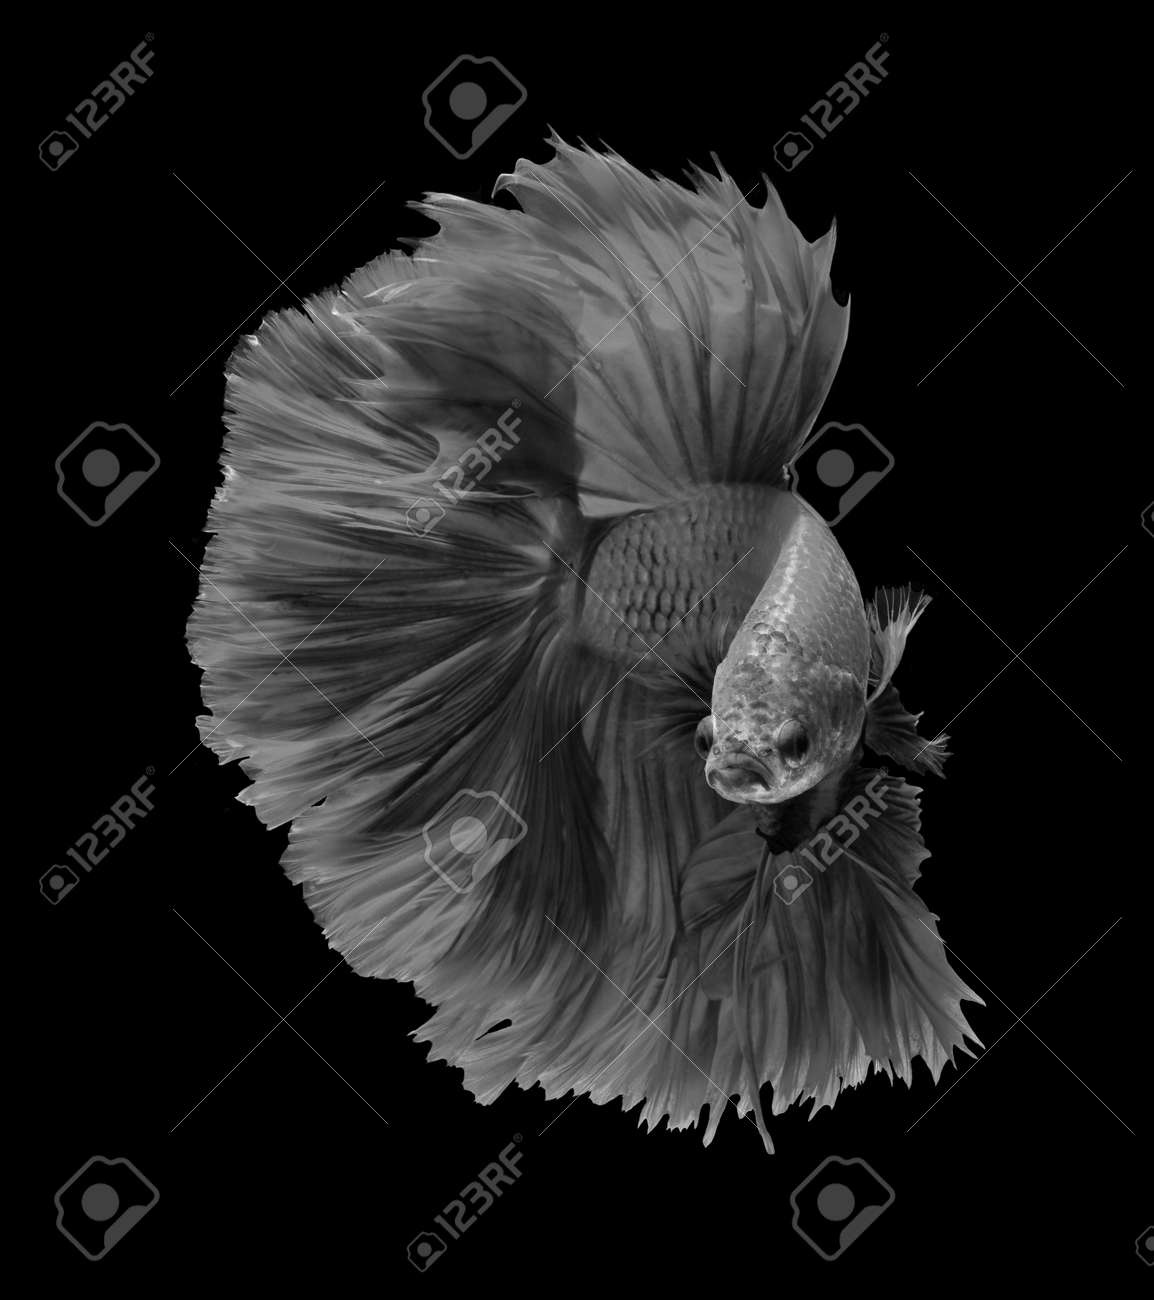 Black and white siamese fighting fish betta fish isolated on black background stock photo